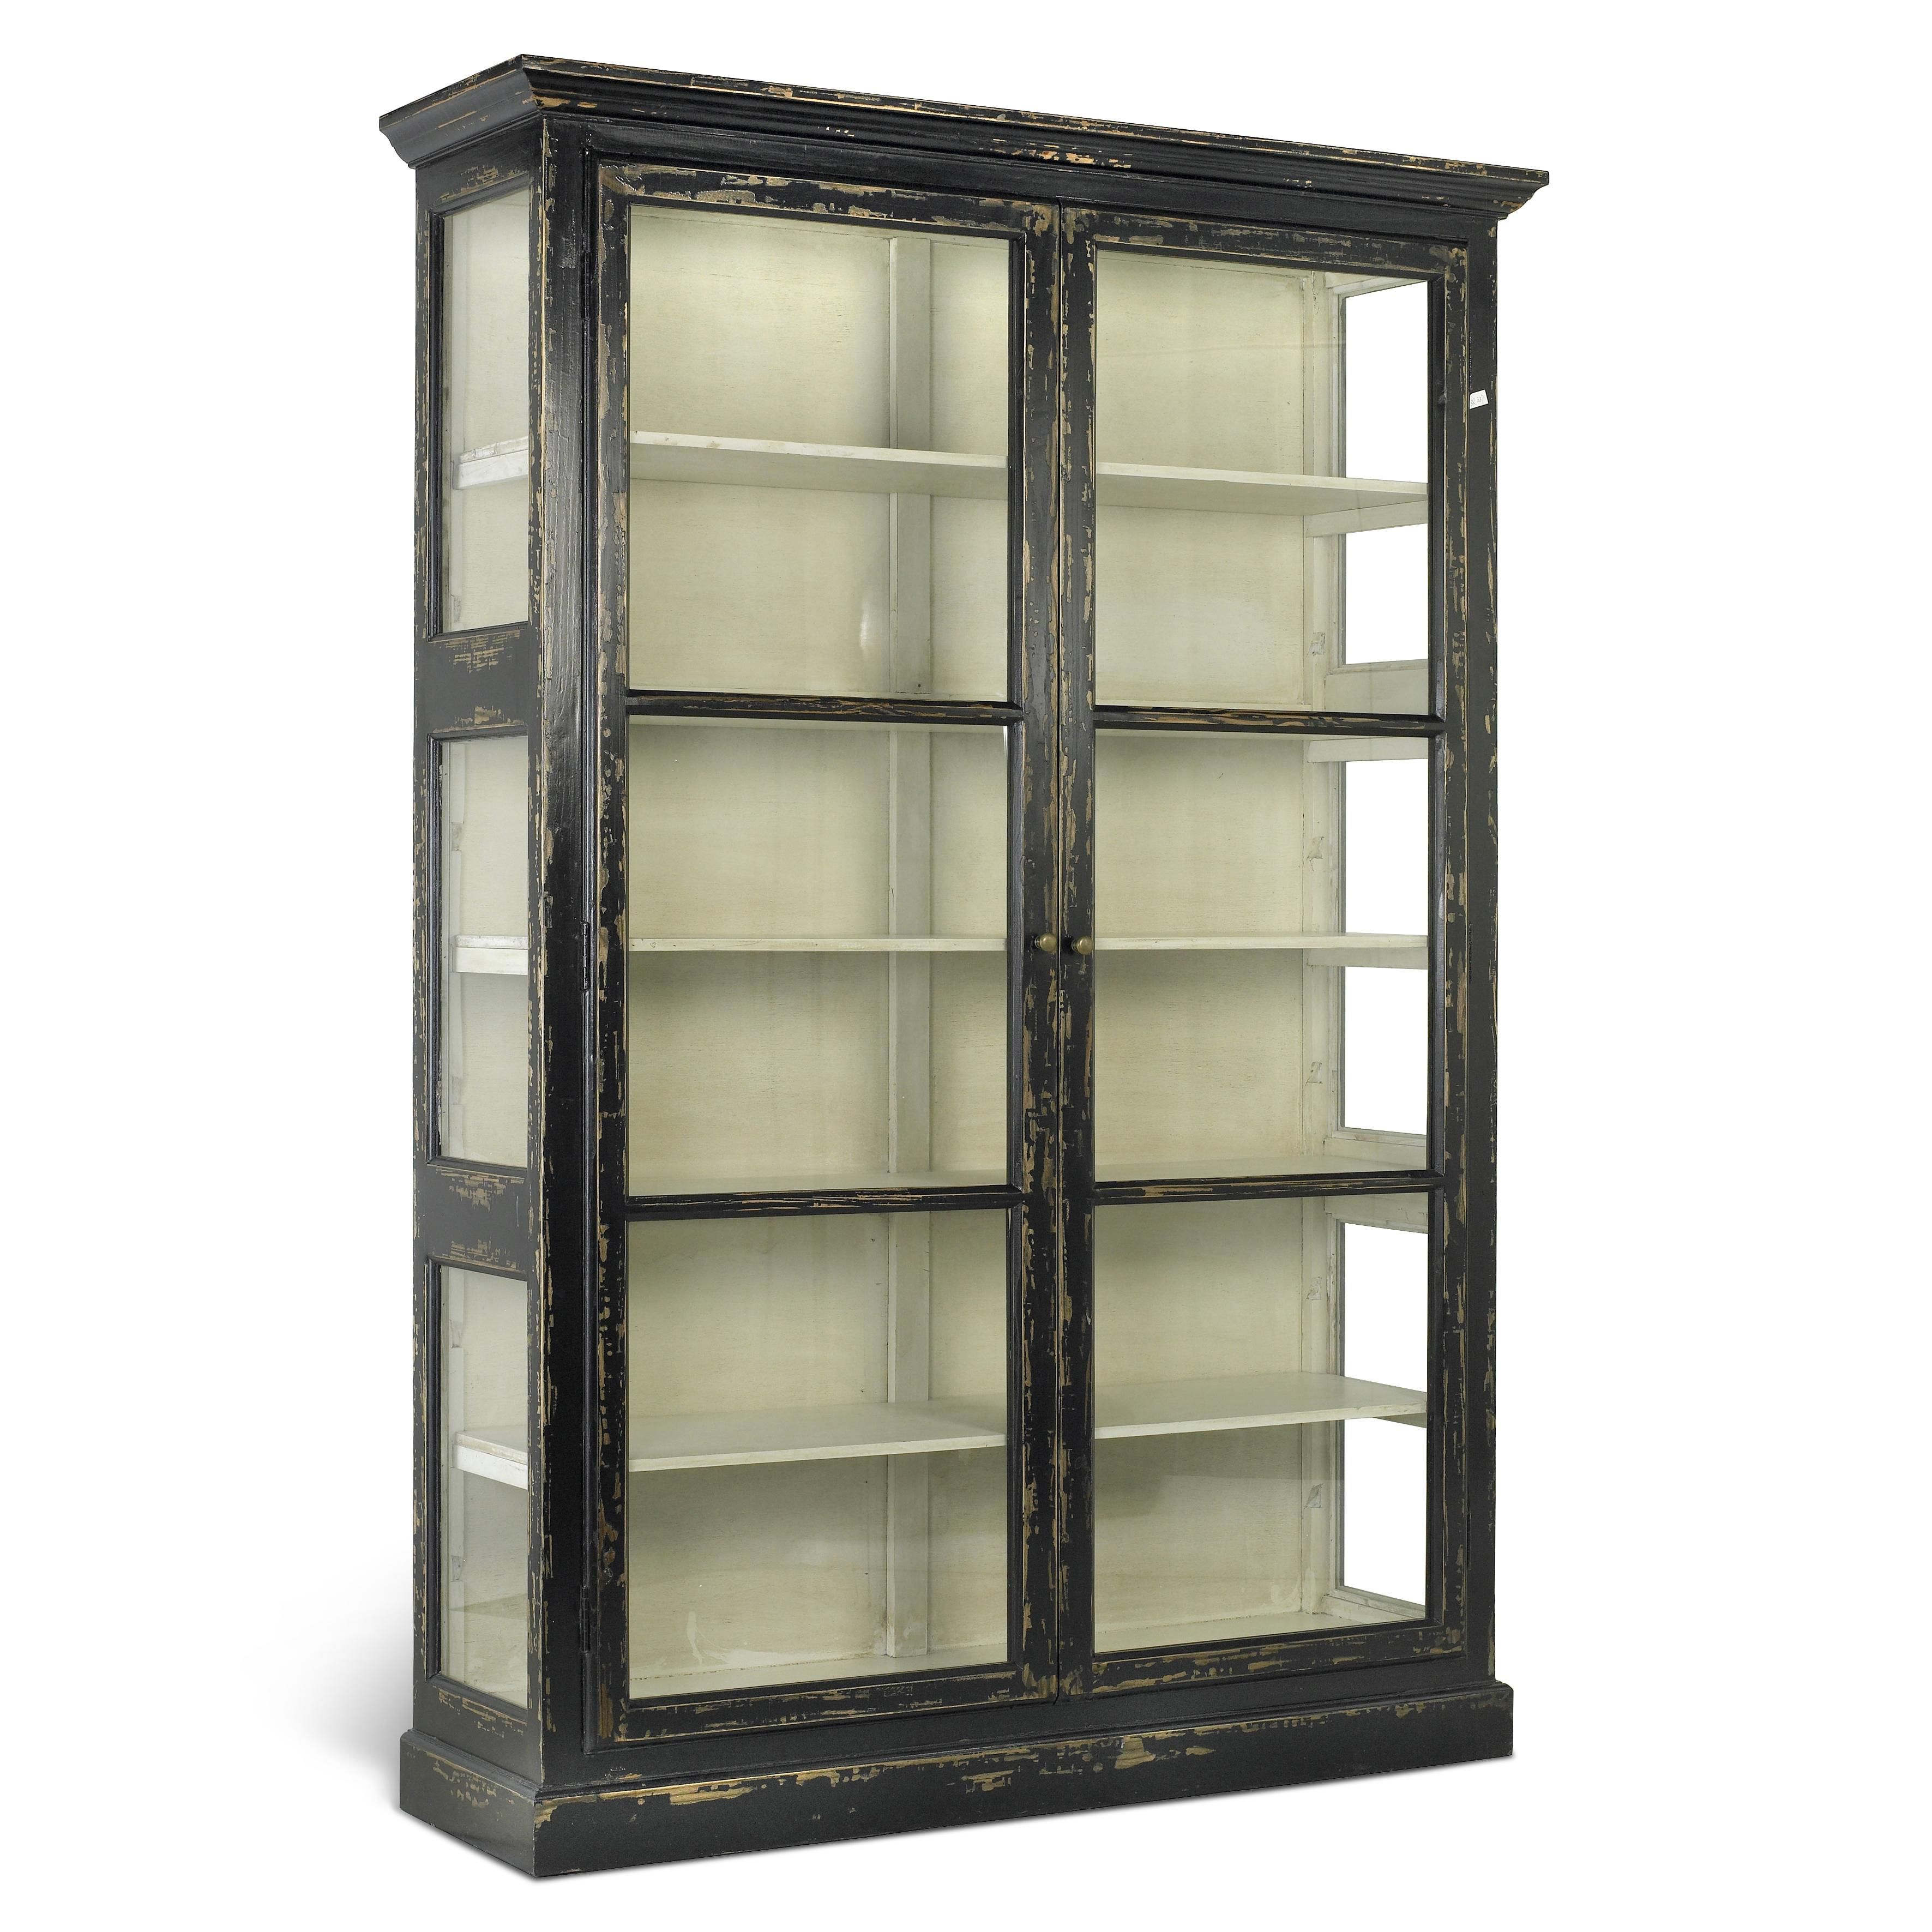 Glasvitrine Discount Large Rustic Glass Cabinet Furnishings Accessories Black